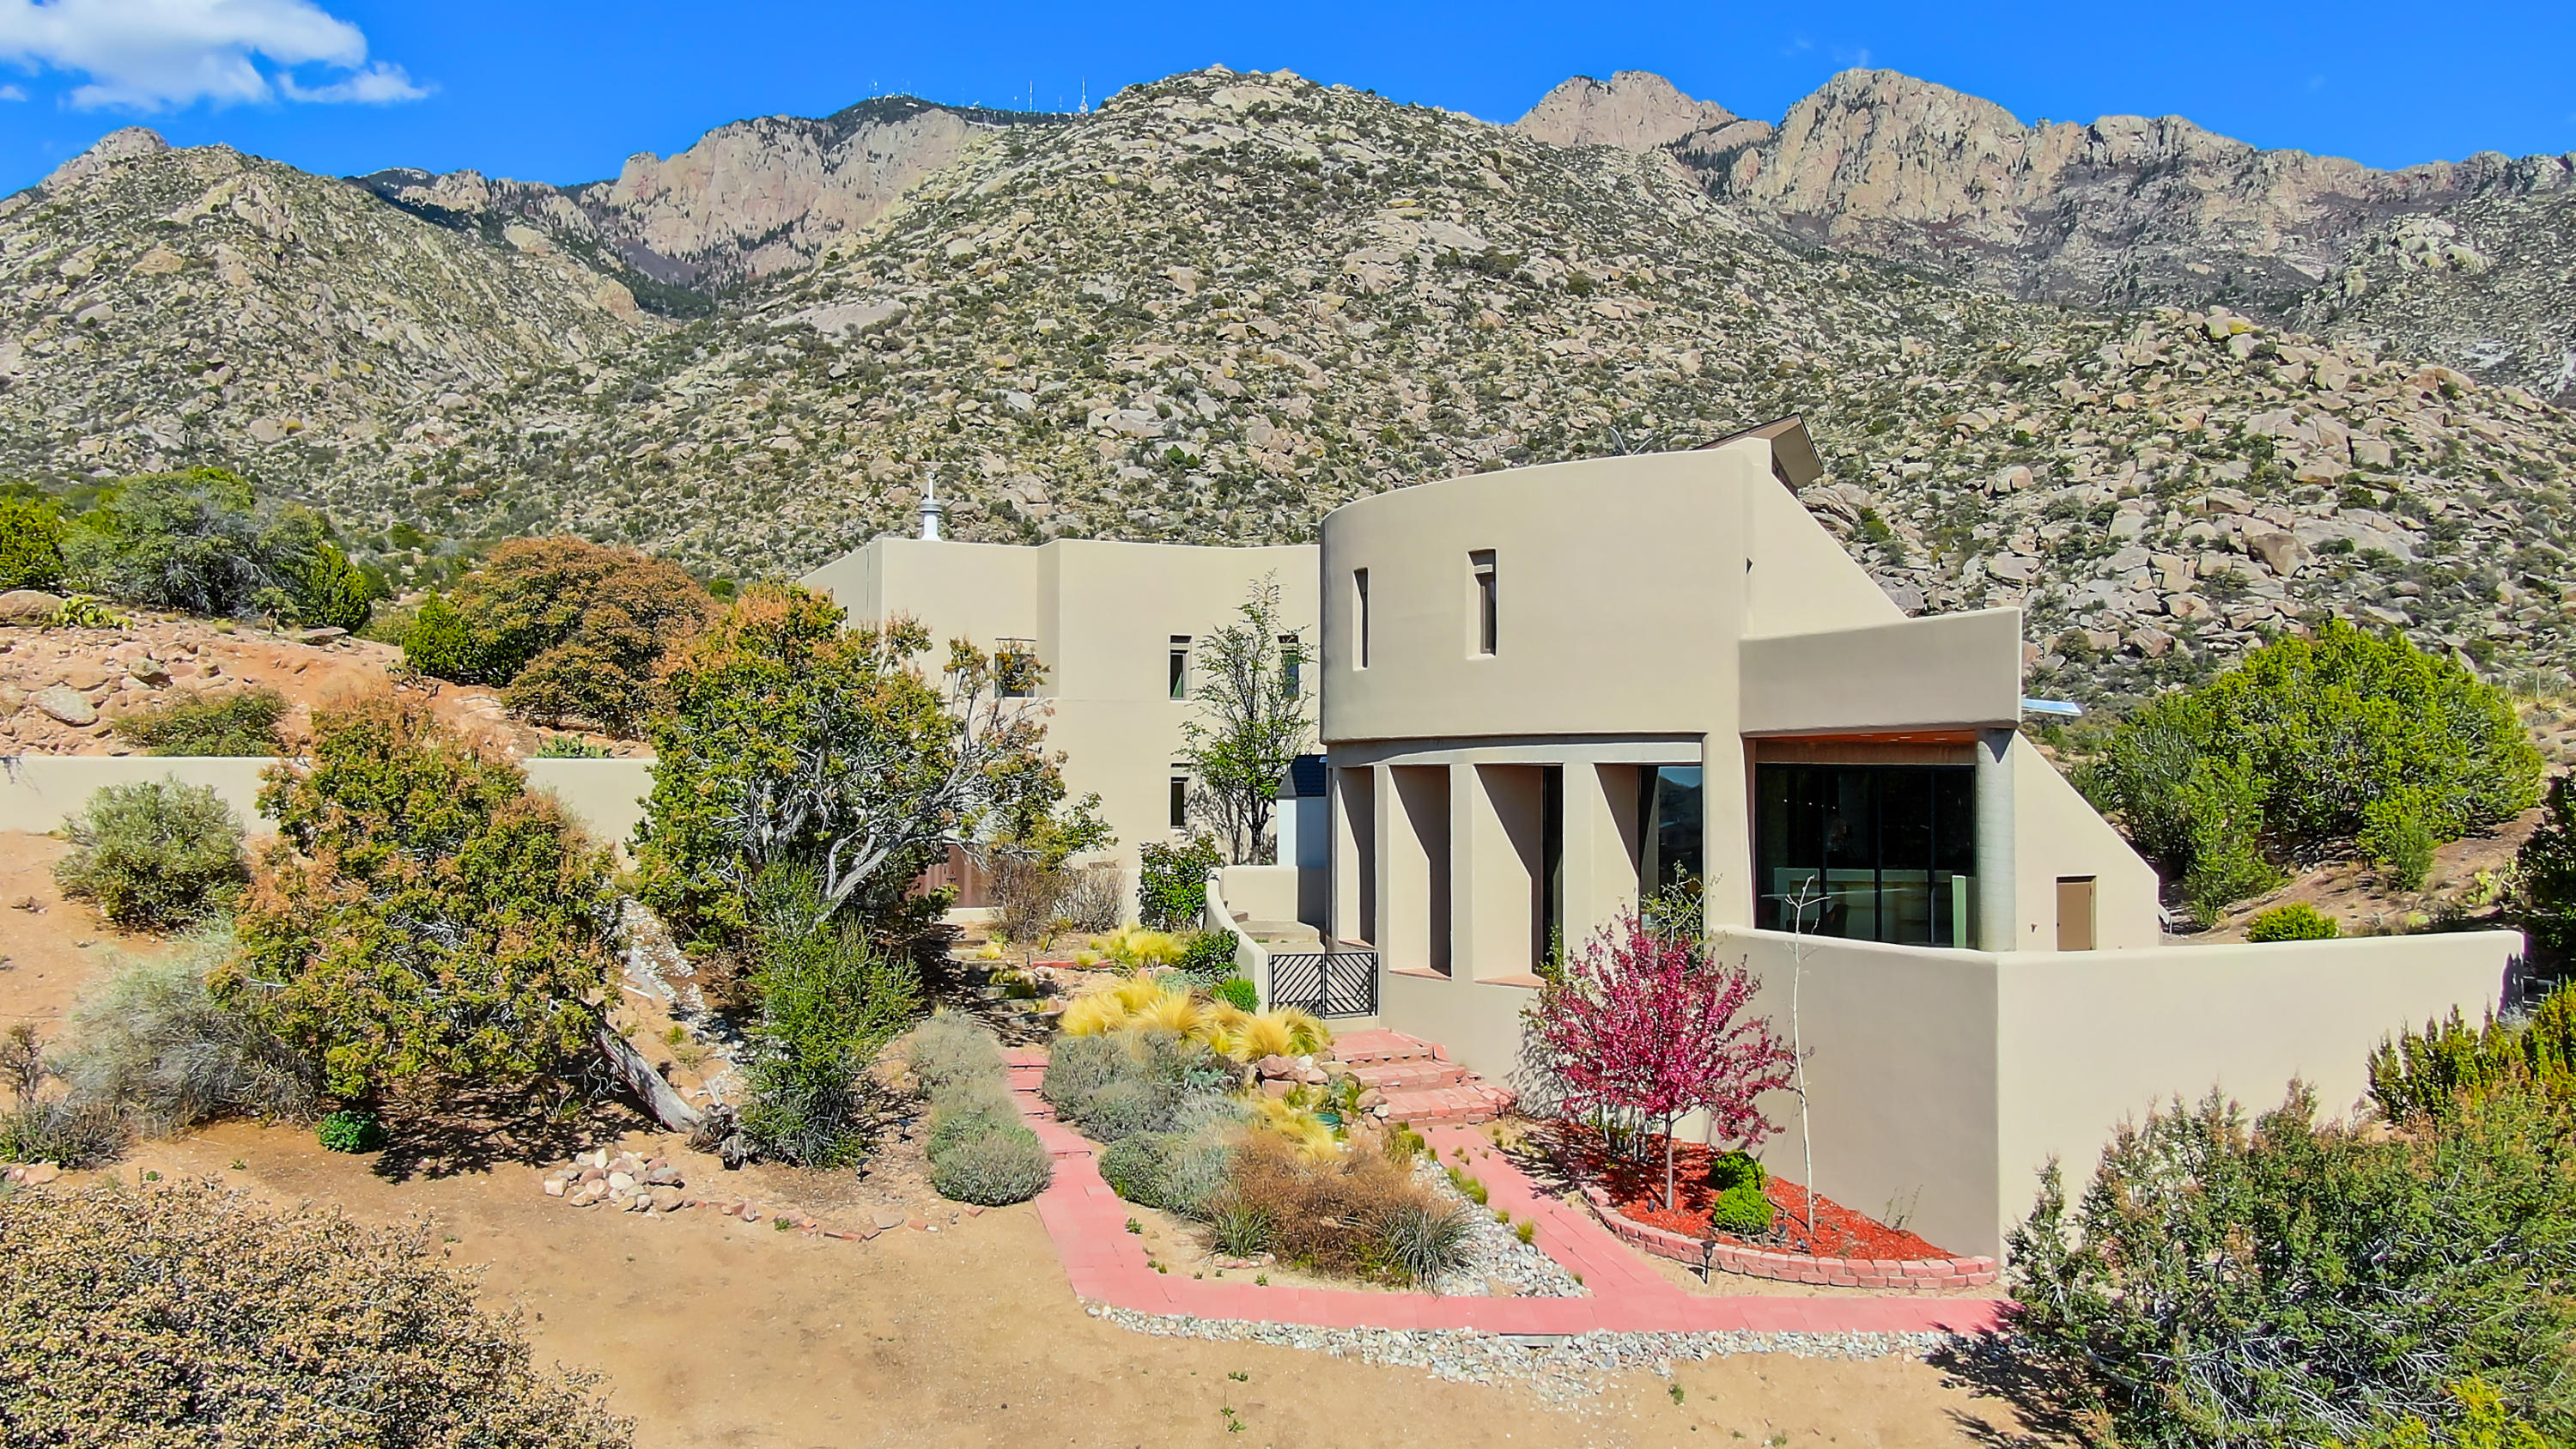 250 SPRING CREEK Place NE Property Photo - Albuquerque, NM real estate listing